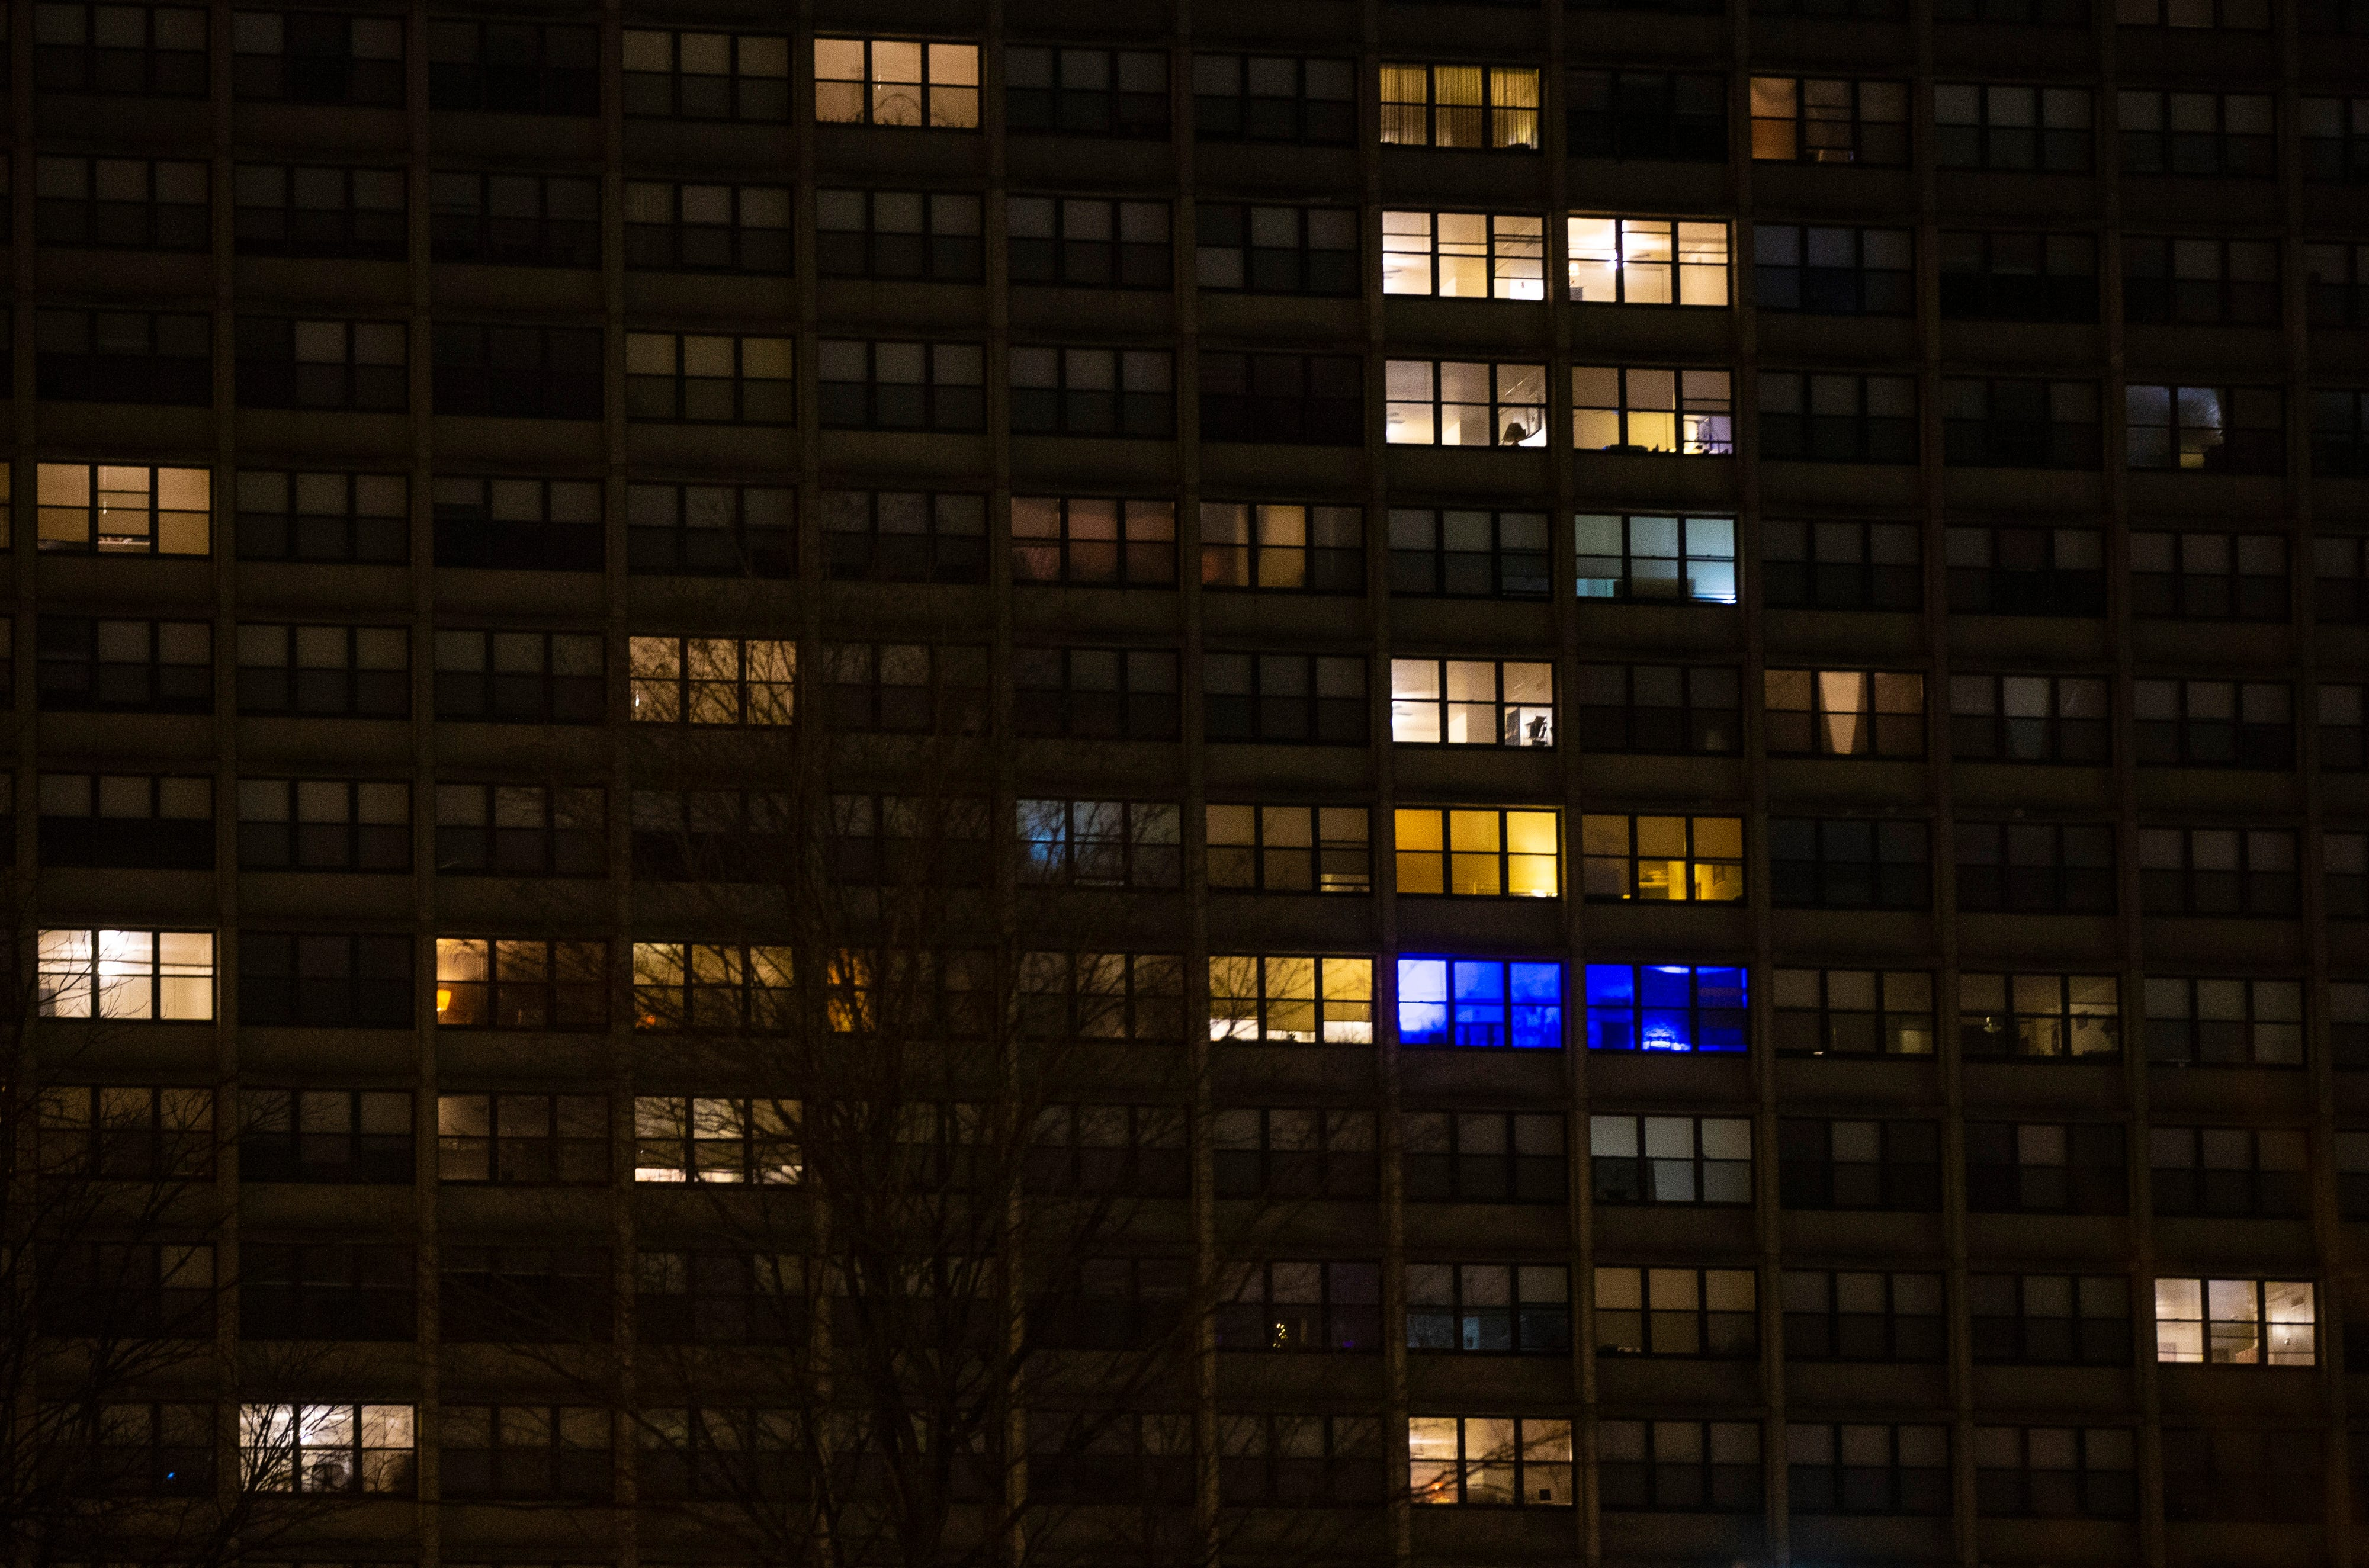 2:09 AMAn apartment is illuminated by blue lighting among the other tungsten lit apartments just off of Ninth Street on Jan. 26, 2020.